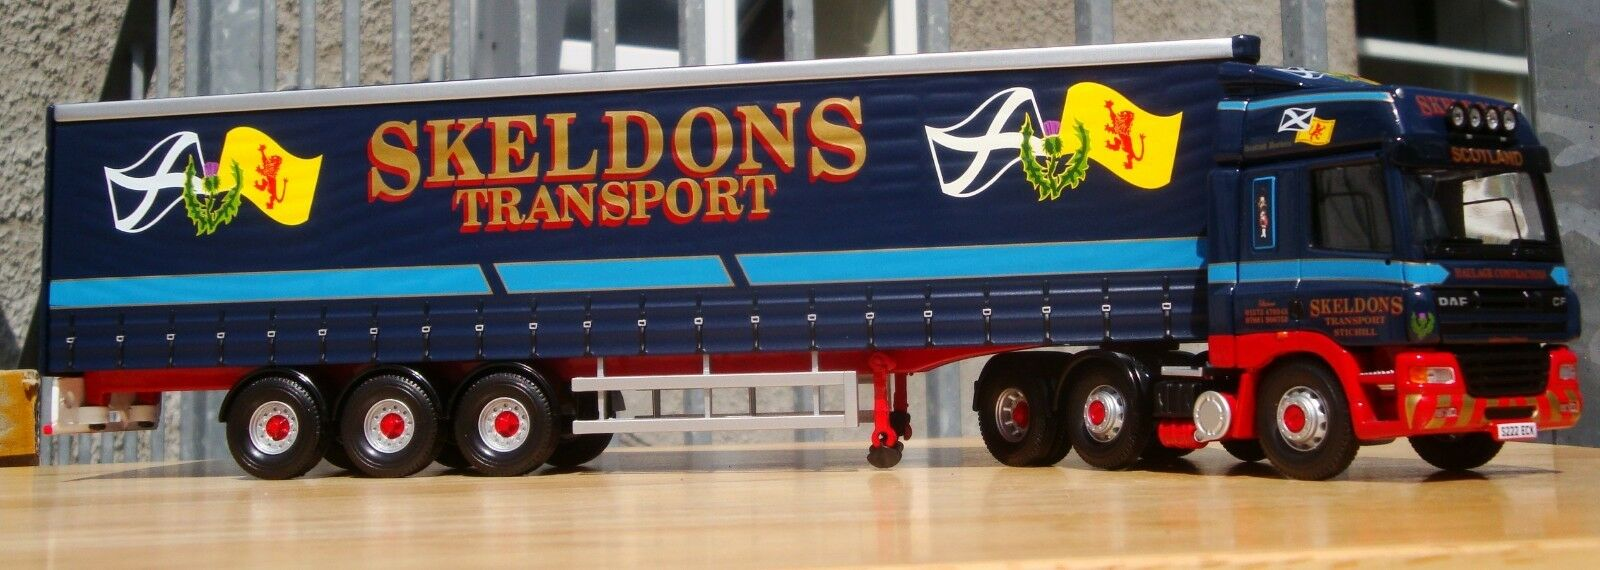 Corgi CC13615, DAF CF Curtainside - Skeldons Transport, 1 50